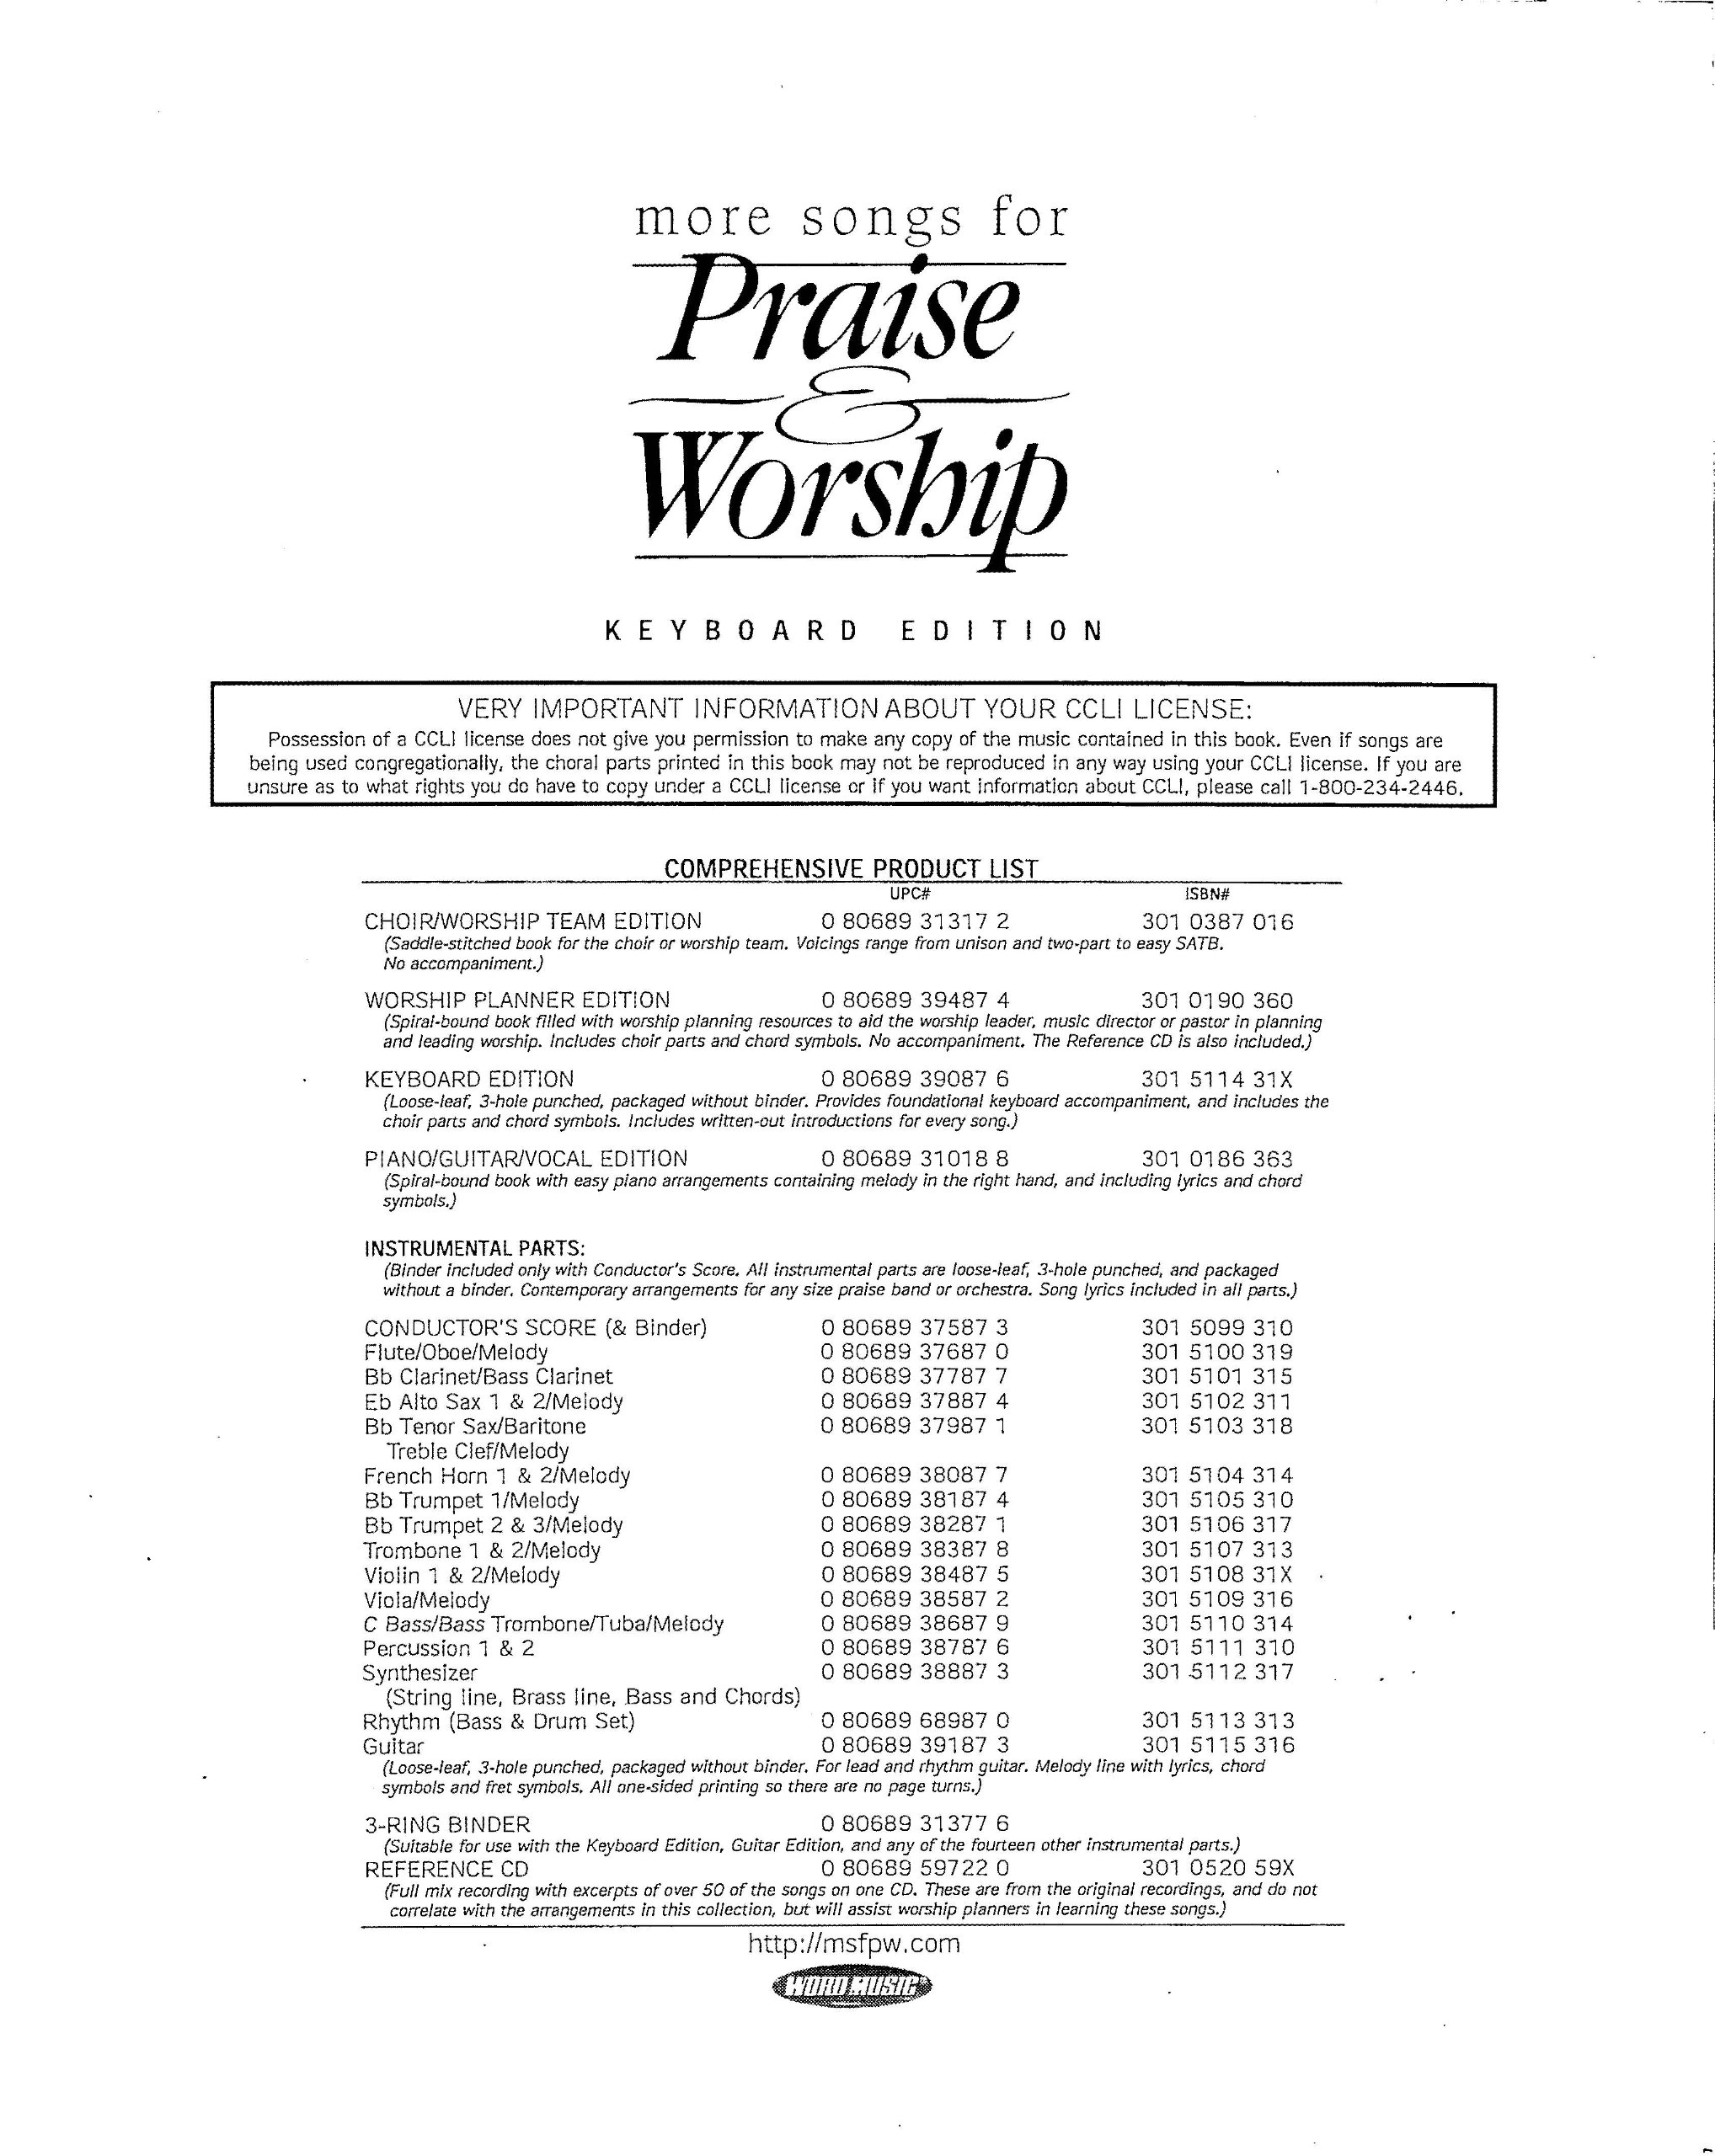 More songs for praise keyboard edition loose leaf more songs more songs for praise keyboard edition loose leaf more songs for praise and worship 1 word music amazon books biocorpaavc Choice Image